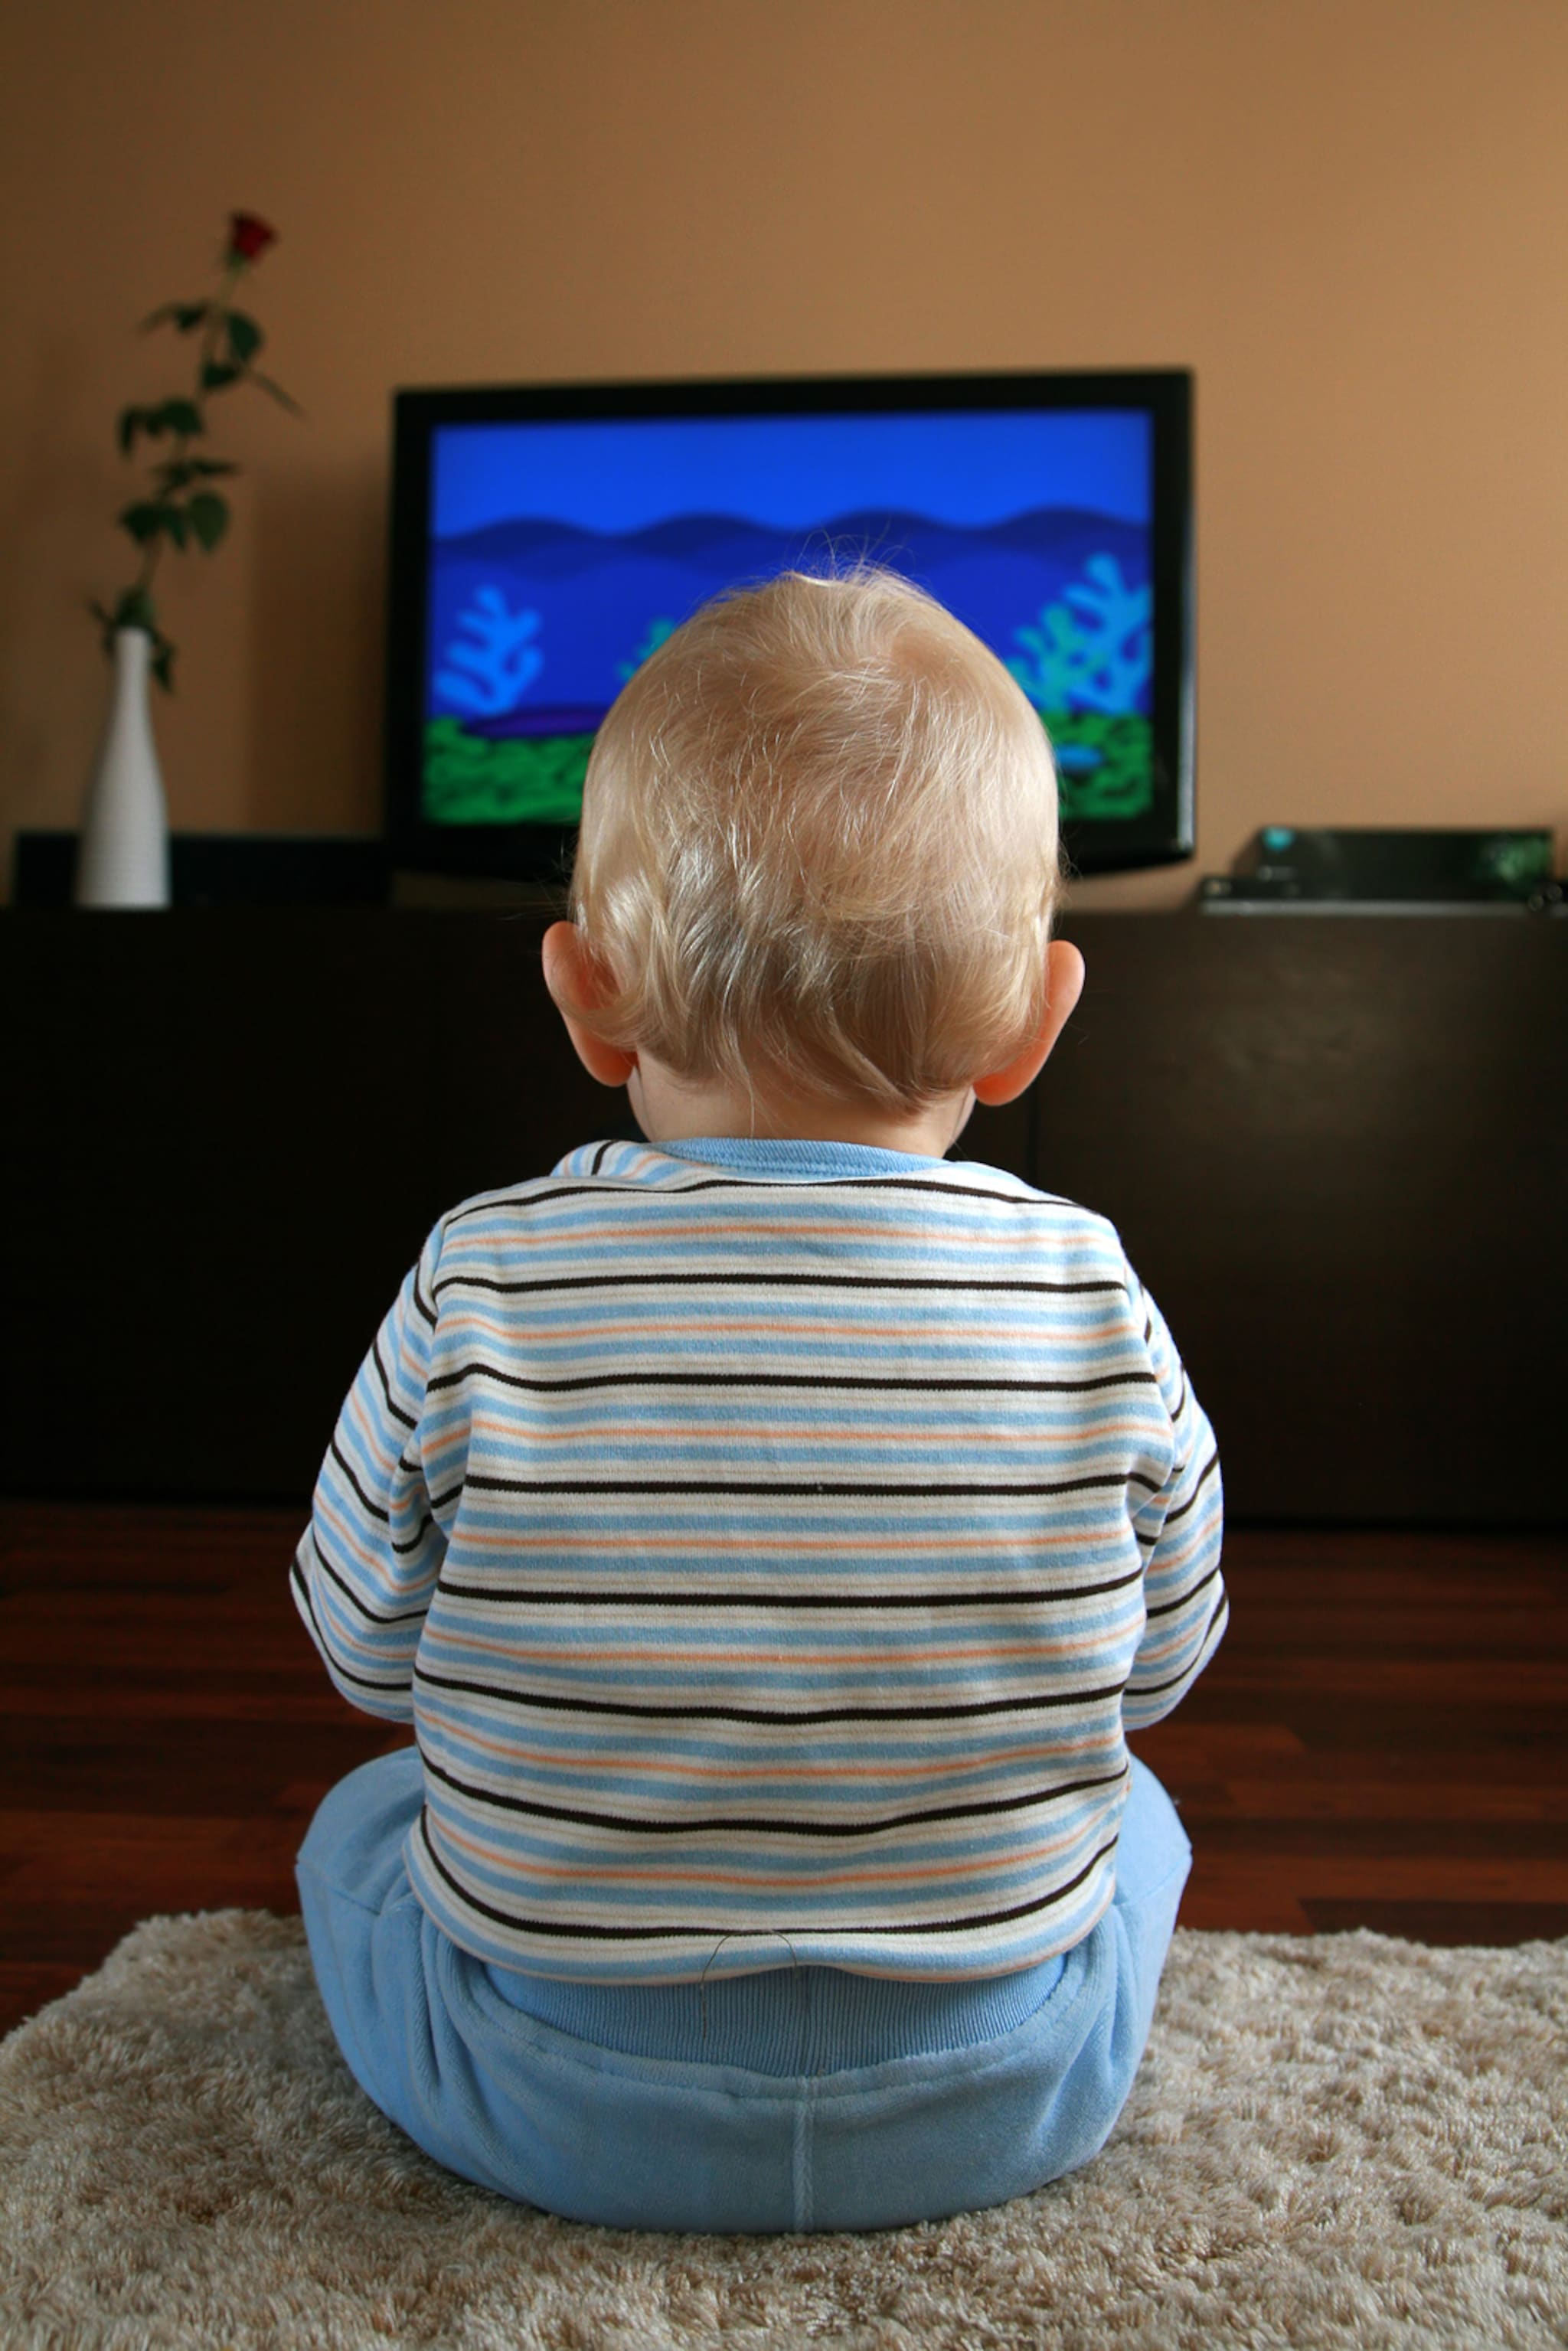 TV watching is linked to brain changes in kids  The